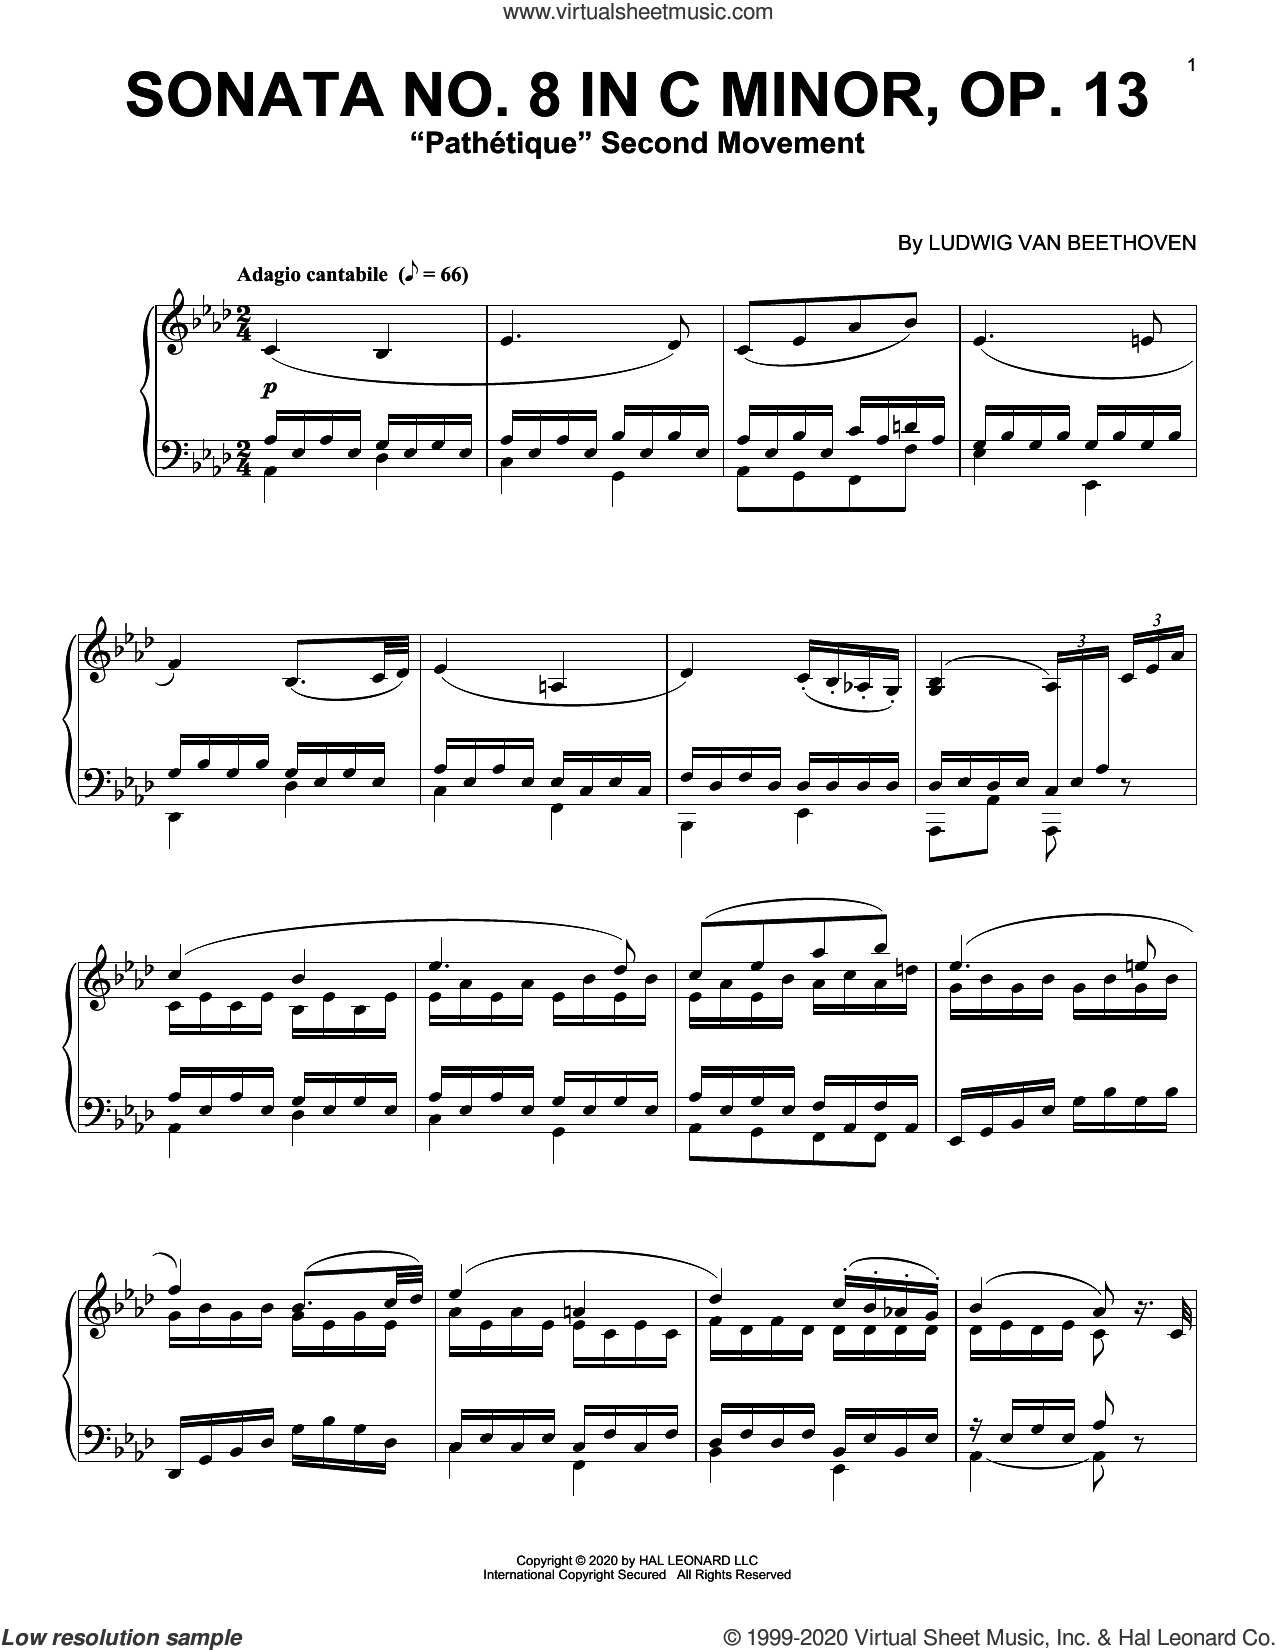 Sonata In C Minor, Op. 13 'Pathetique' (2nd Movement) sheet music for piano solo by Ludwig van Beethoven, classical score, intermediate skill level